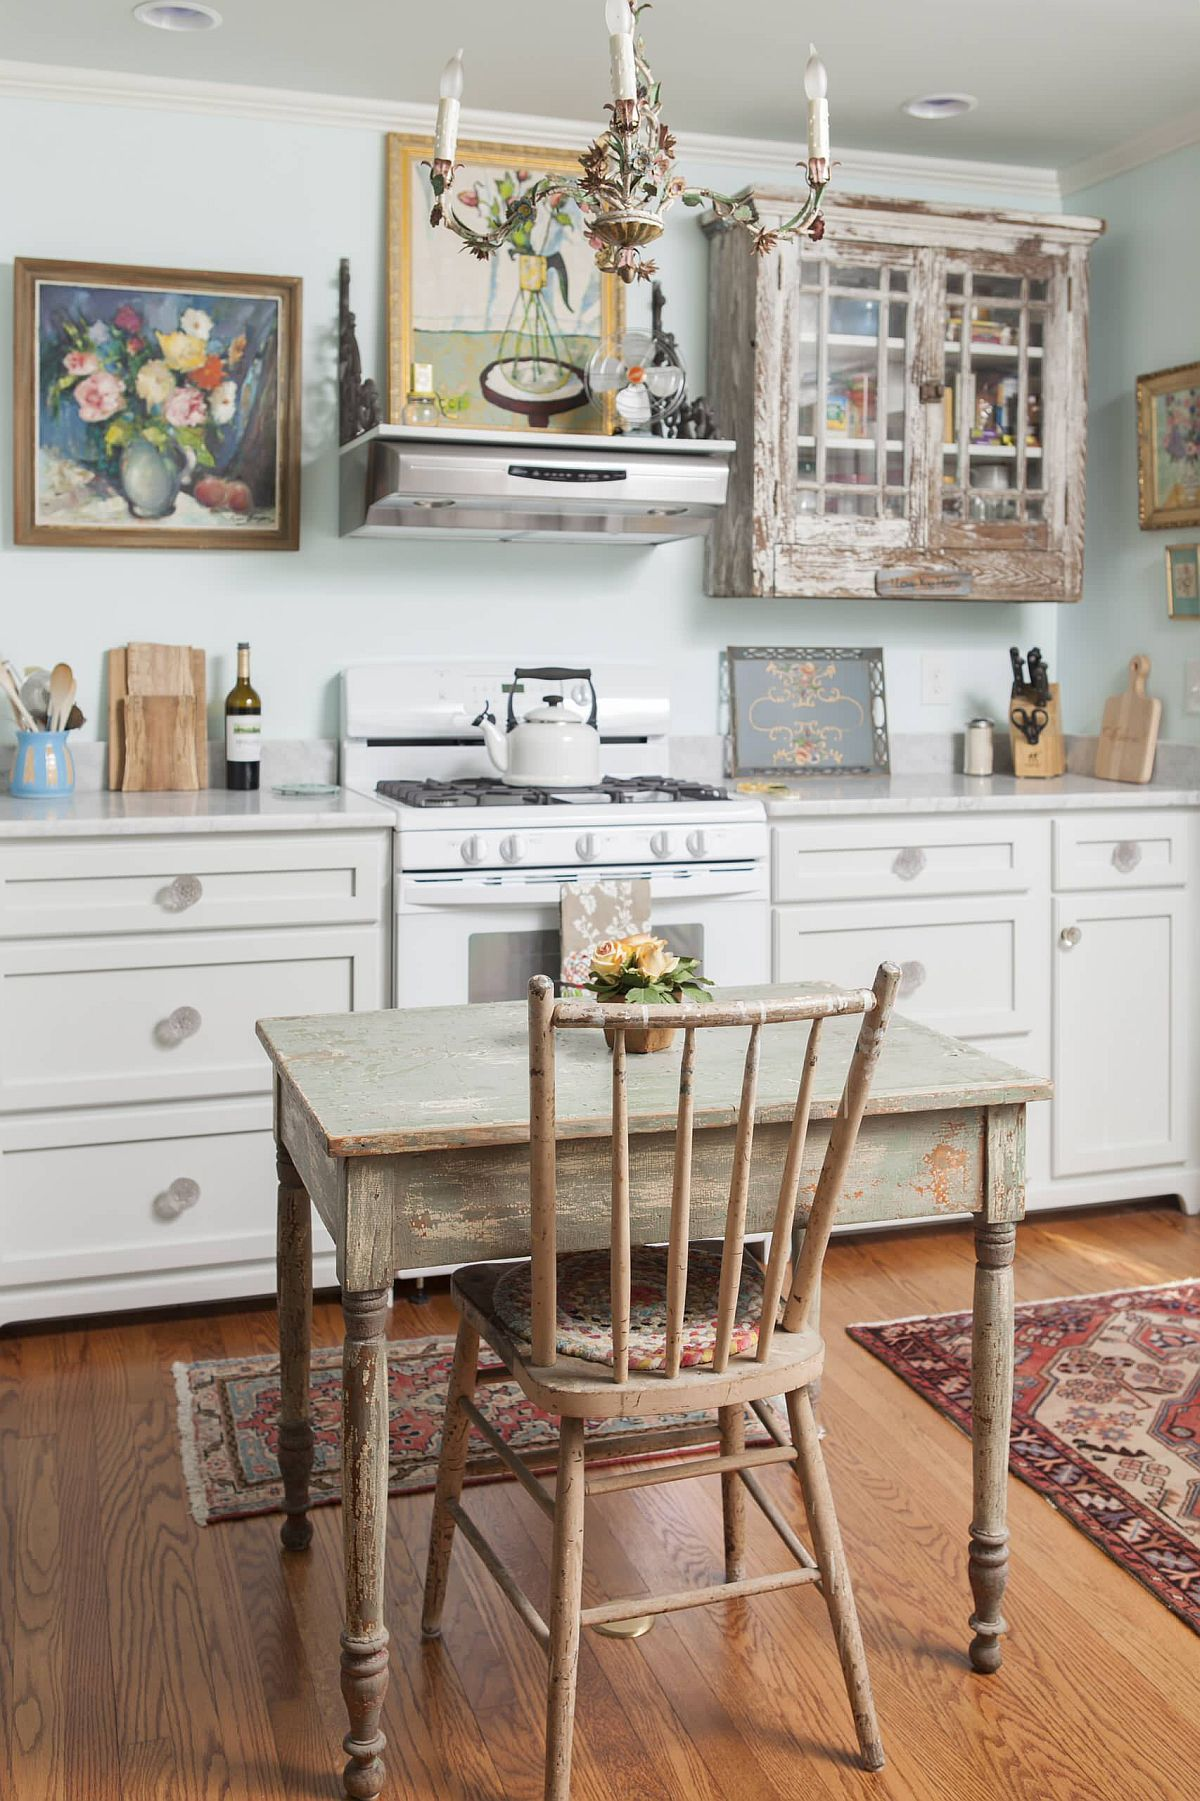 Gorgeous shabby chic kitchen where artwork brings flowery charm to the setting